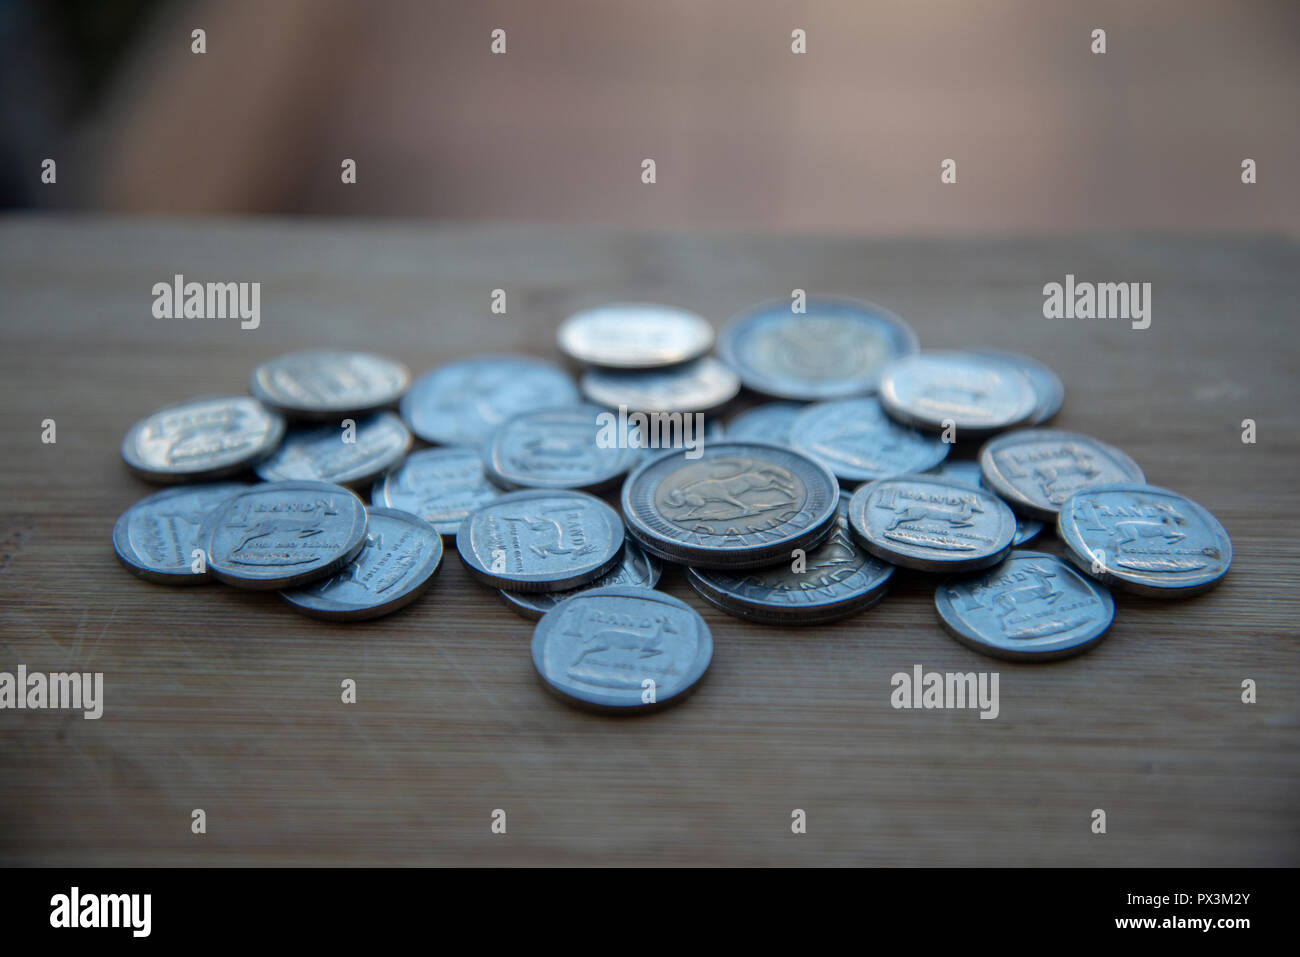 Johannesburg, South Africa, 19 October, 2018. The South African Rand re-gained some of its recent losses and headed into the weekend a little stronger. Credit: Eva-Lotta Jansson/Alamy Live News Stock Photo